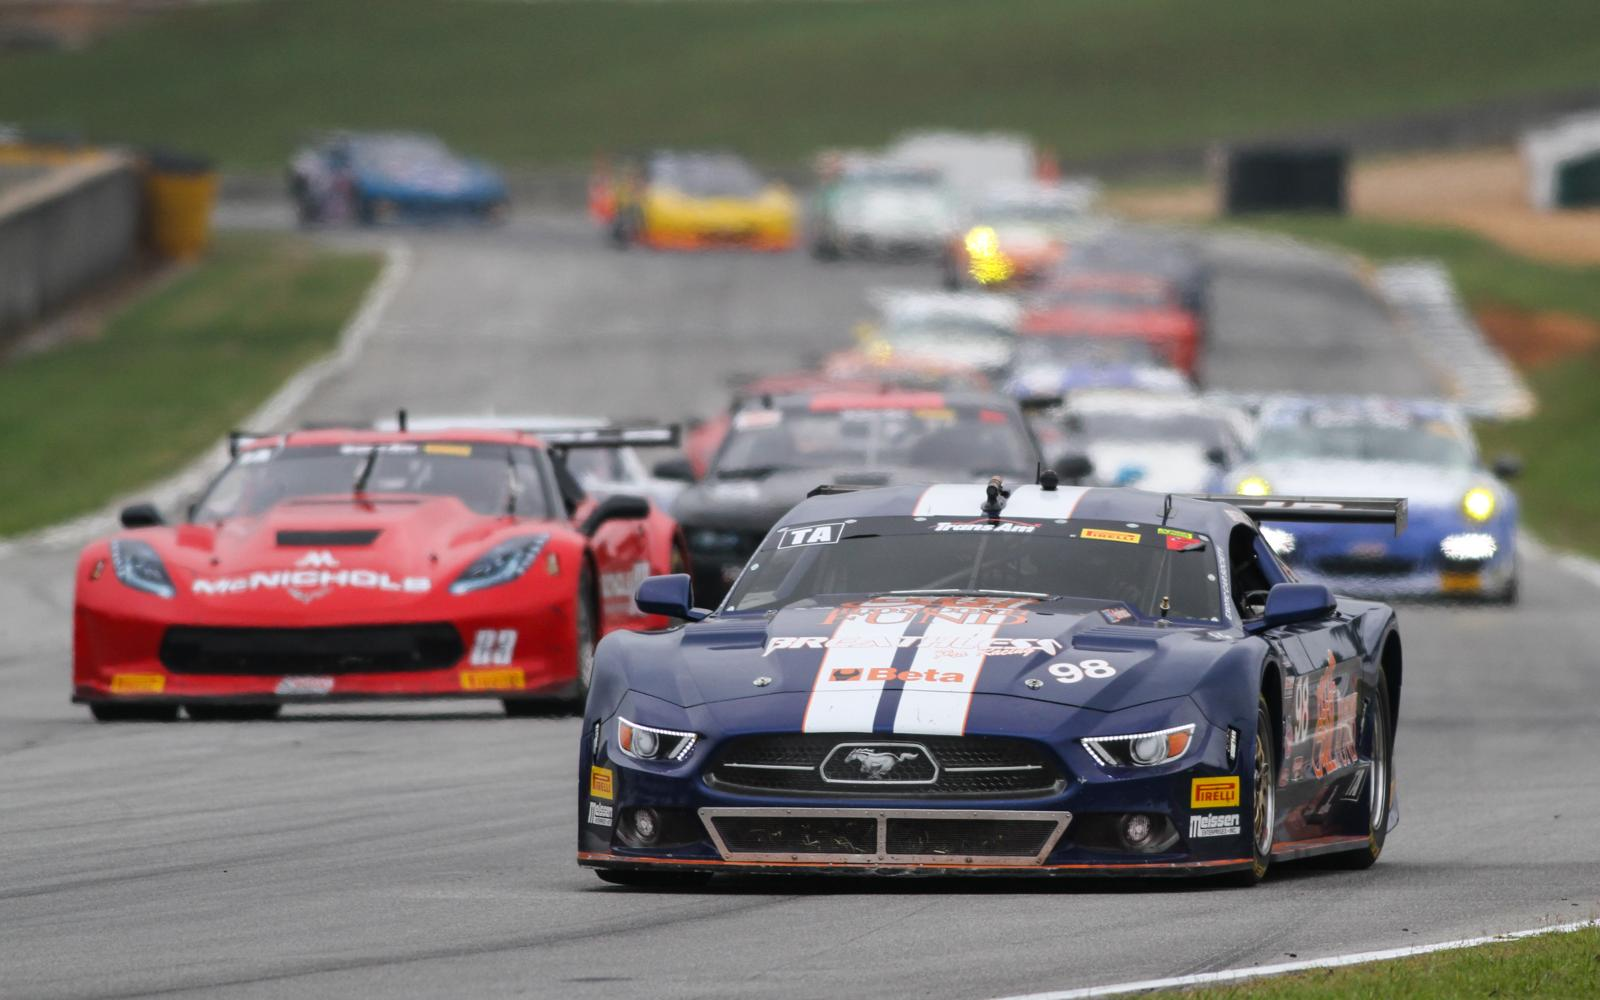 Ernie Francis, Jr., and Tony Buffomante grab Trans Am wins at Road Atlanta